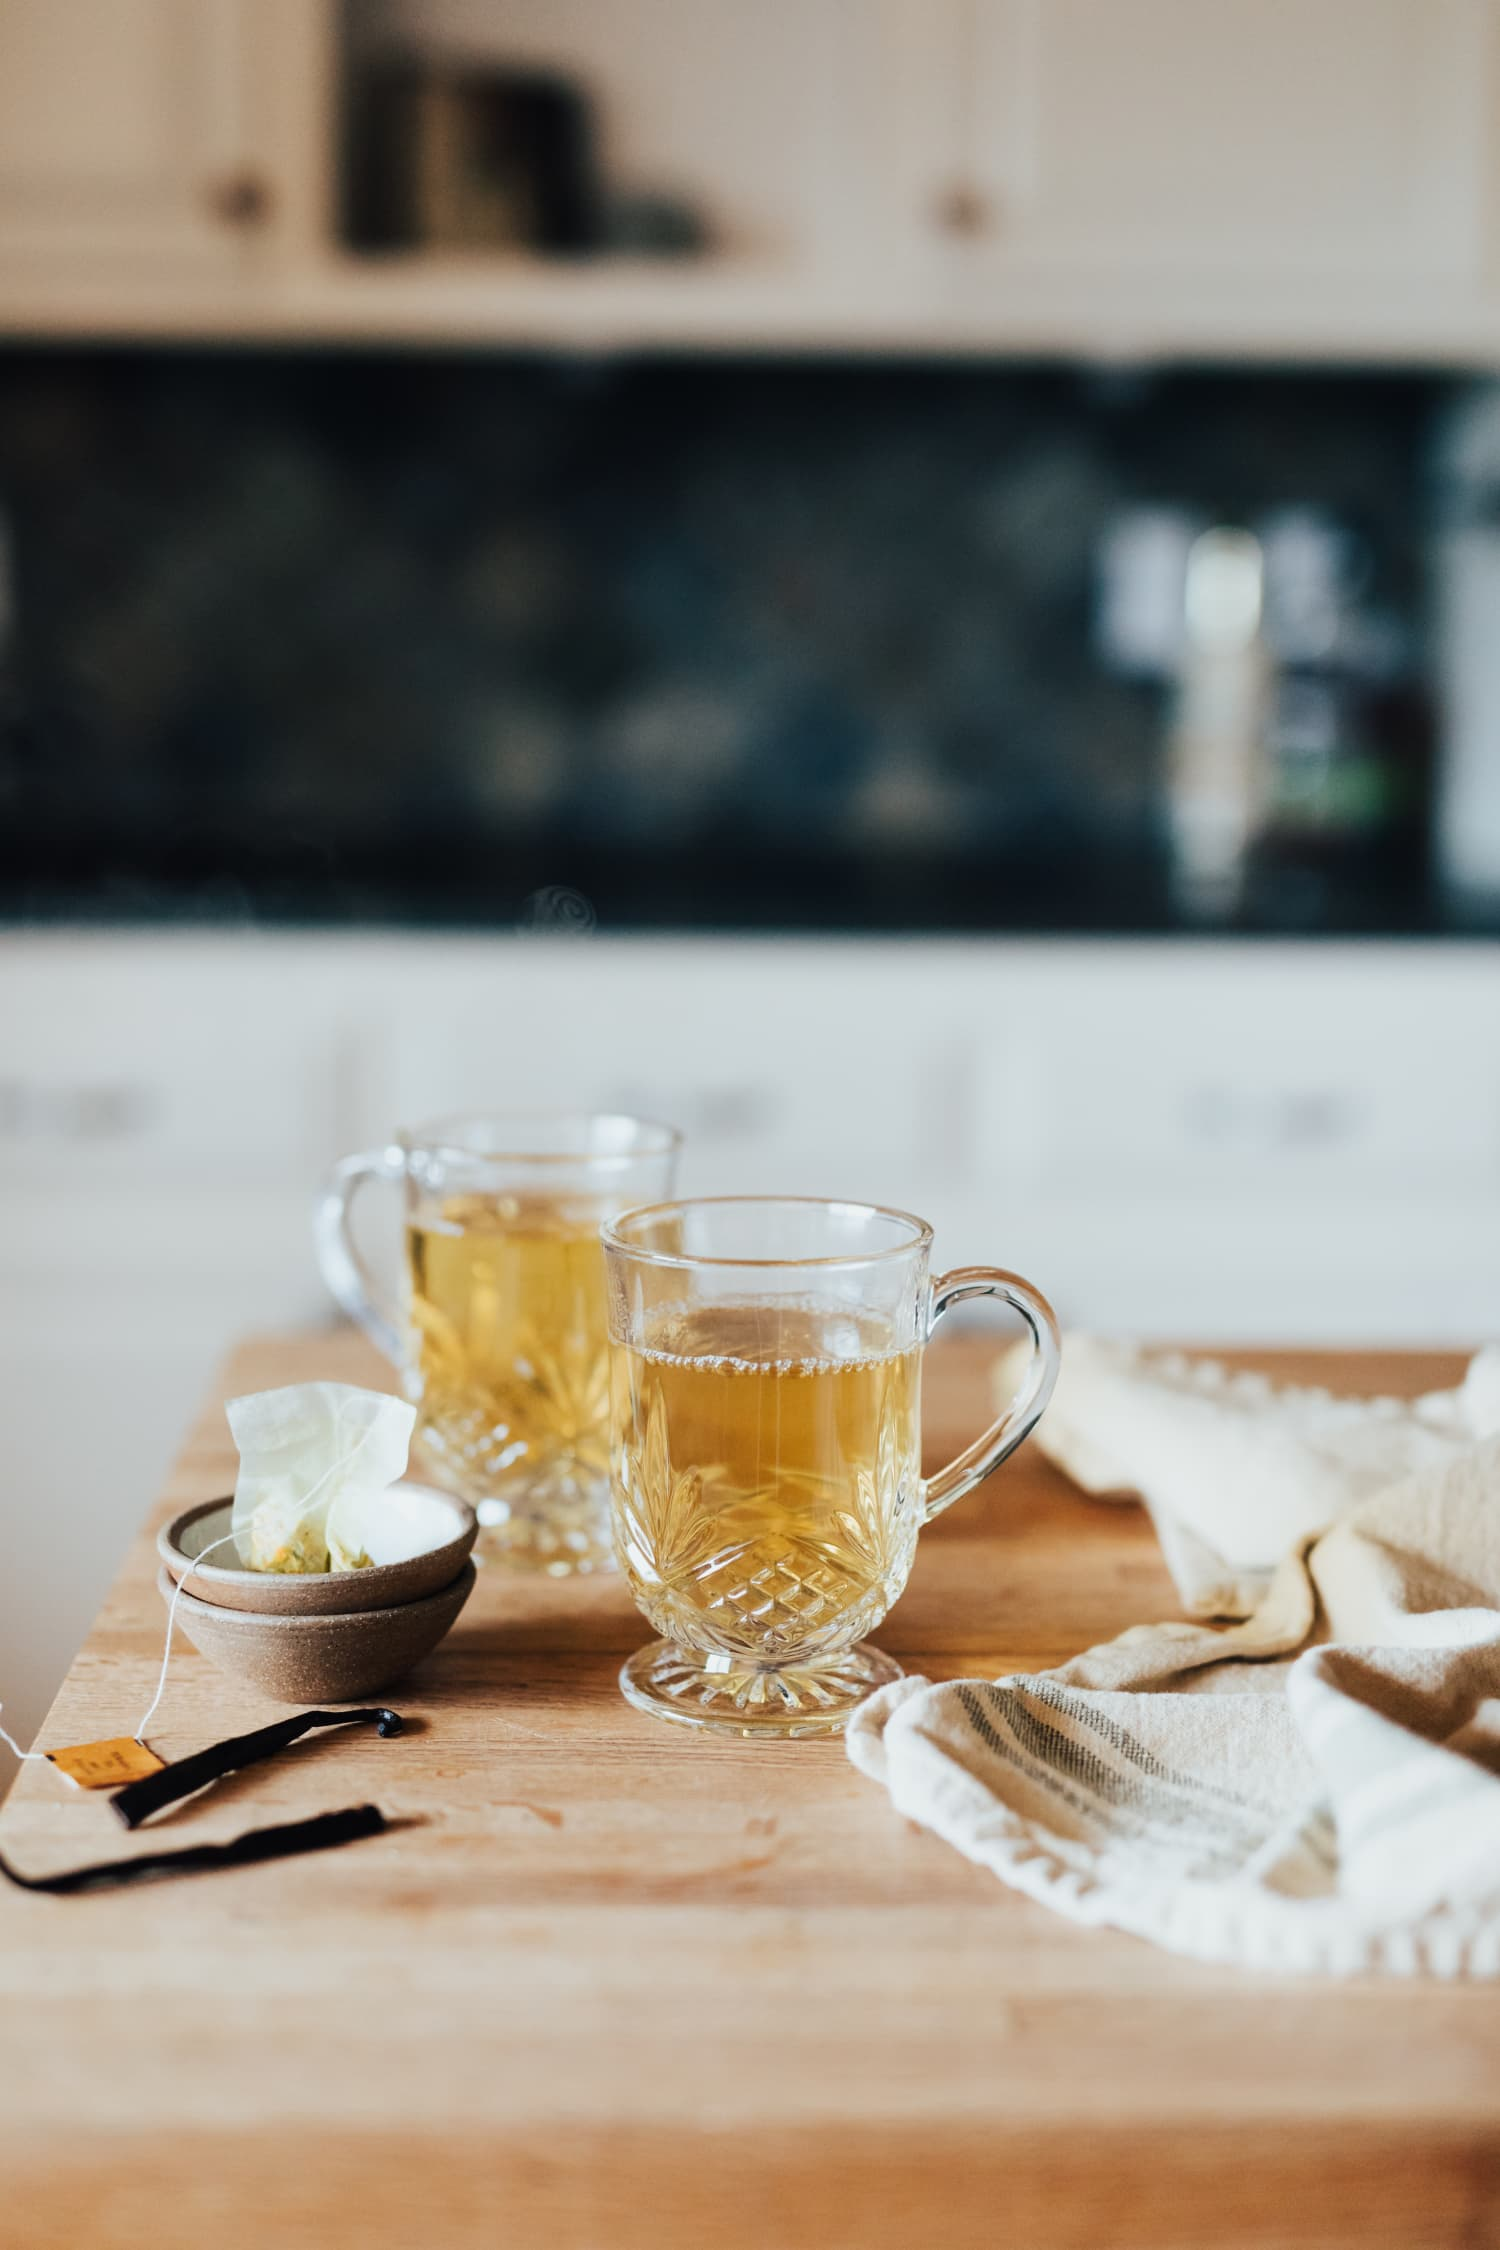 Stop Throwing Out Your Used Tea Bags